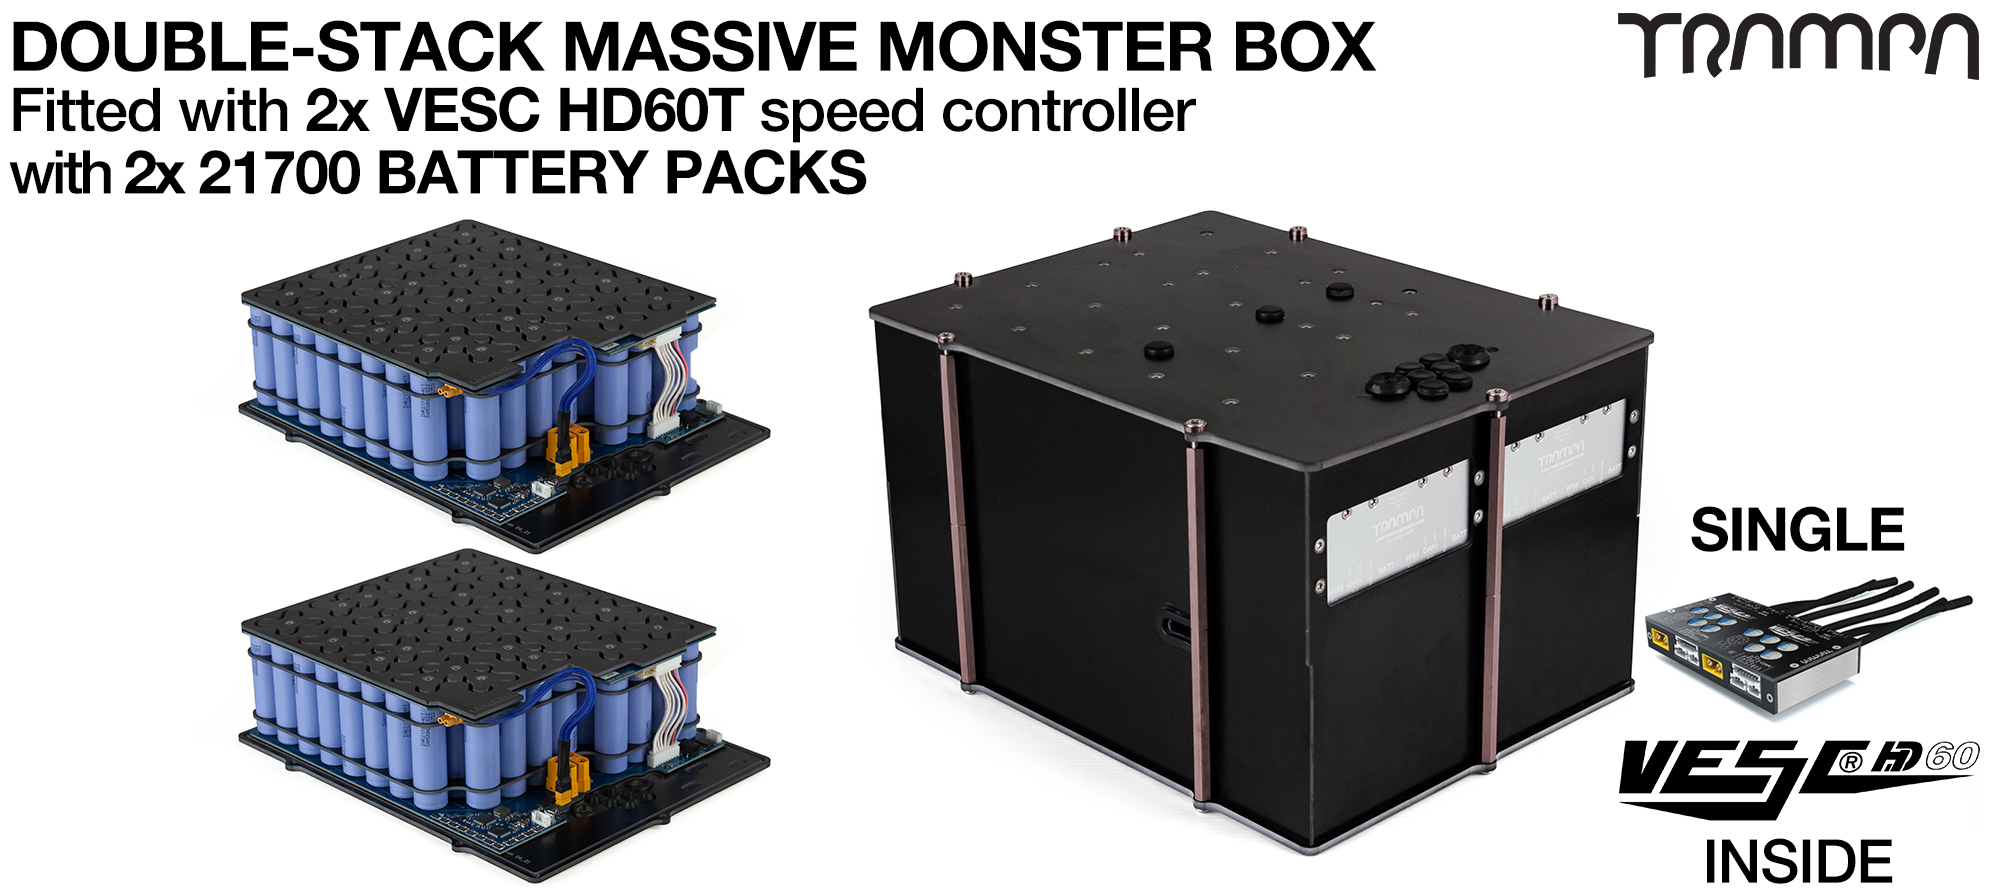 4WD DOUBLE STACK MASSIVE MONSTER Box with 21700 PCB Pack with 2x VESC HD-60Twin & 168x 21700 cells 12s7p = 70Ah - Specifically made to work in conjunction with TRAMPA's Electric Decks but can be adapted to fit anything - UK Customers only